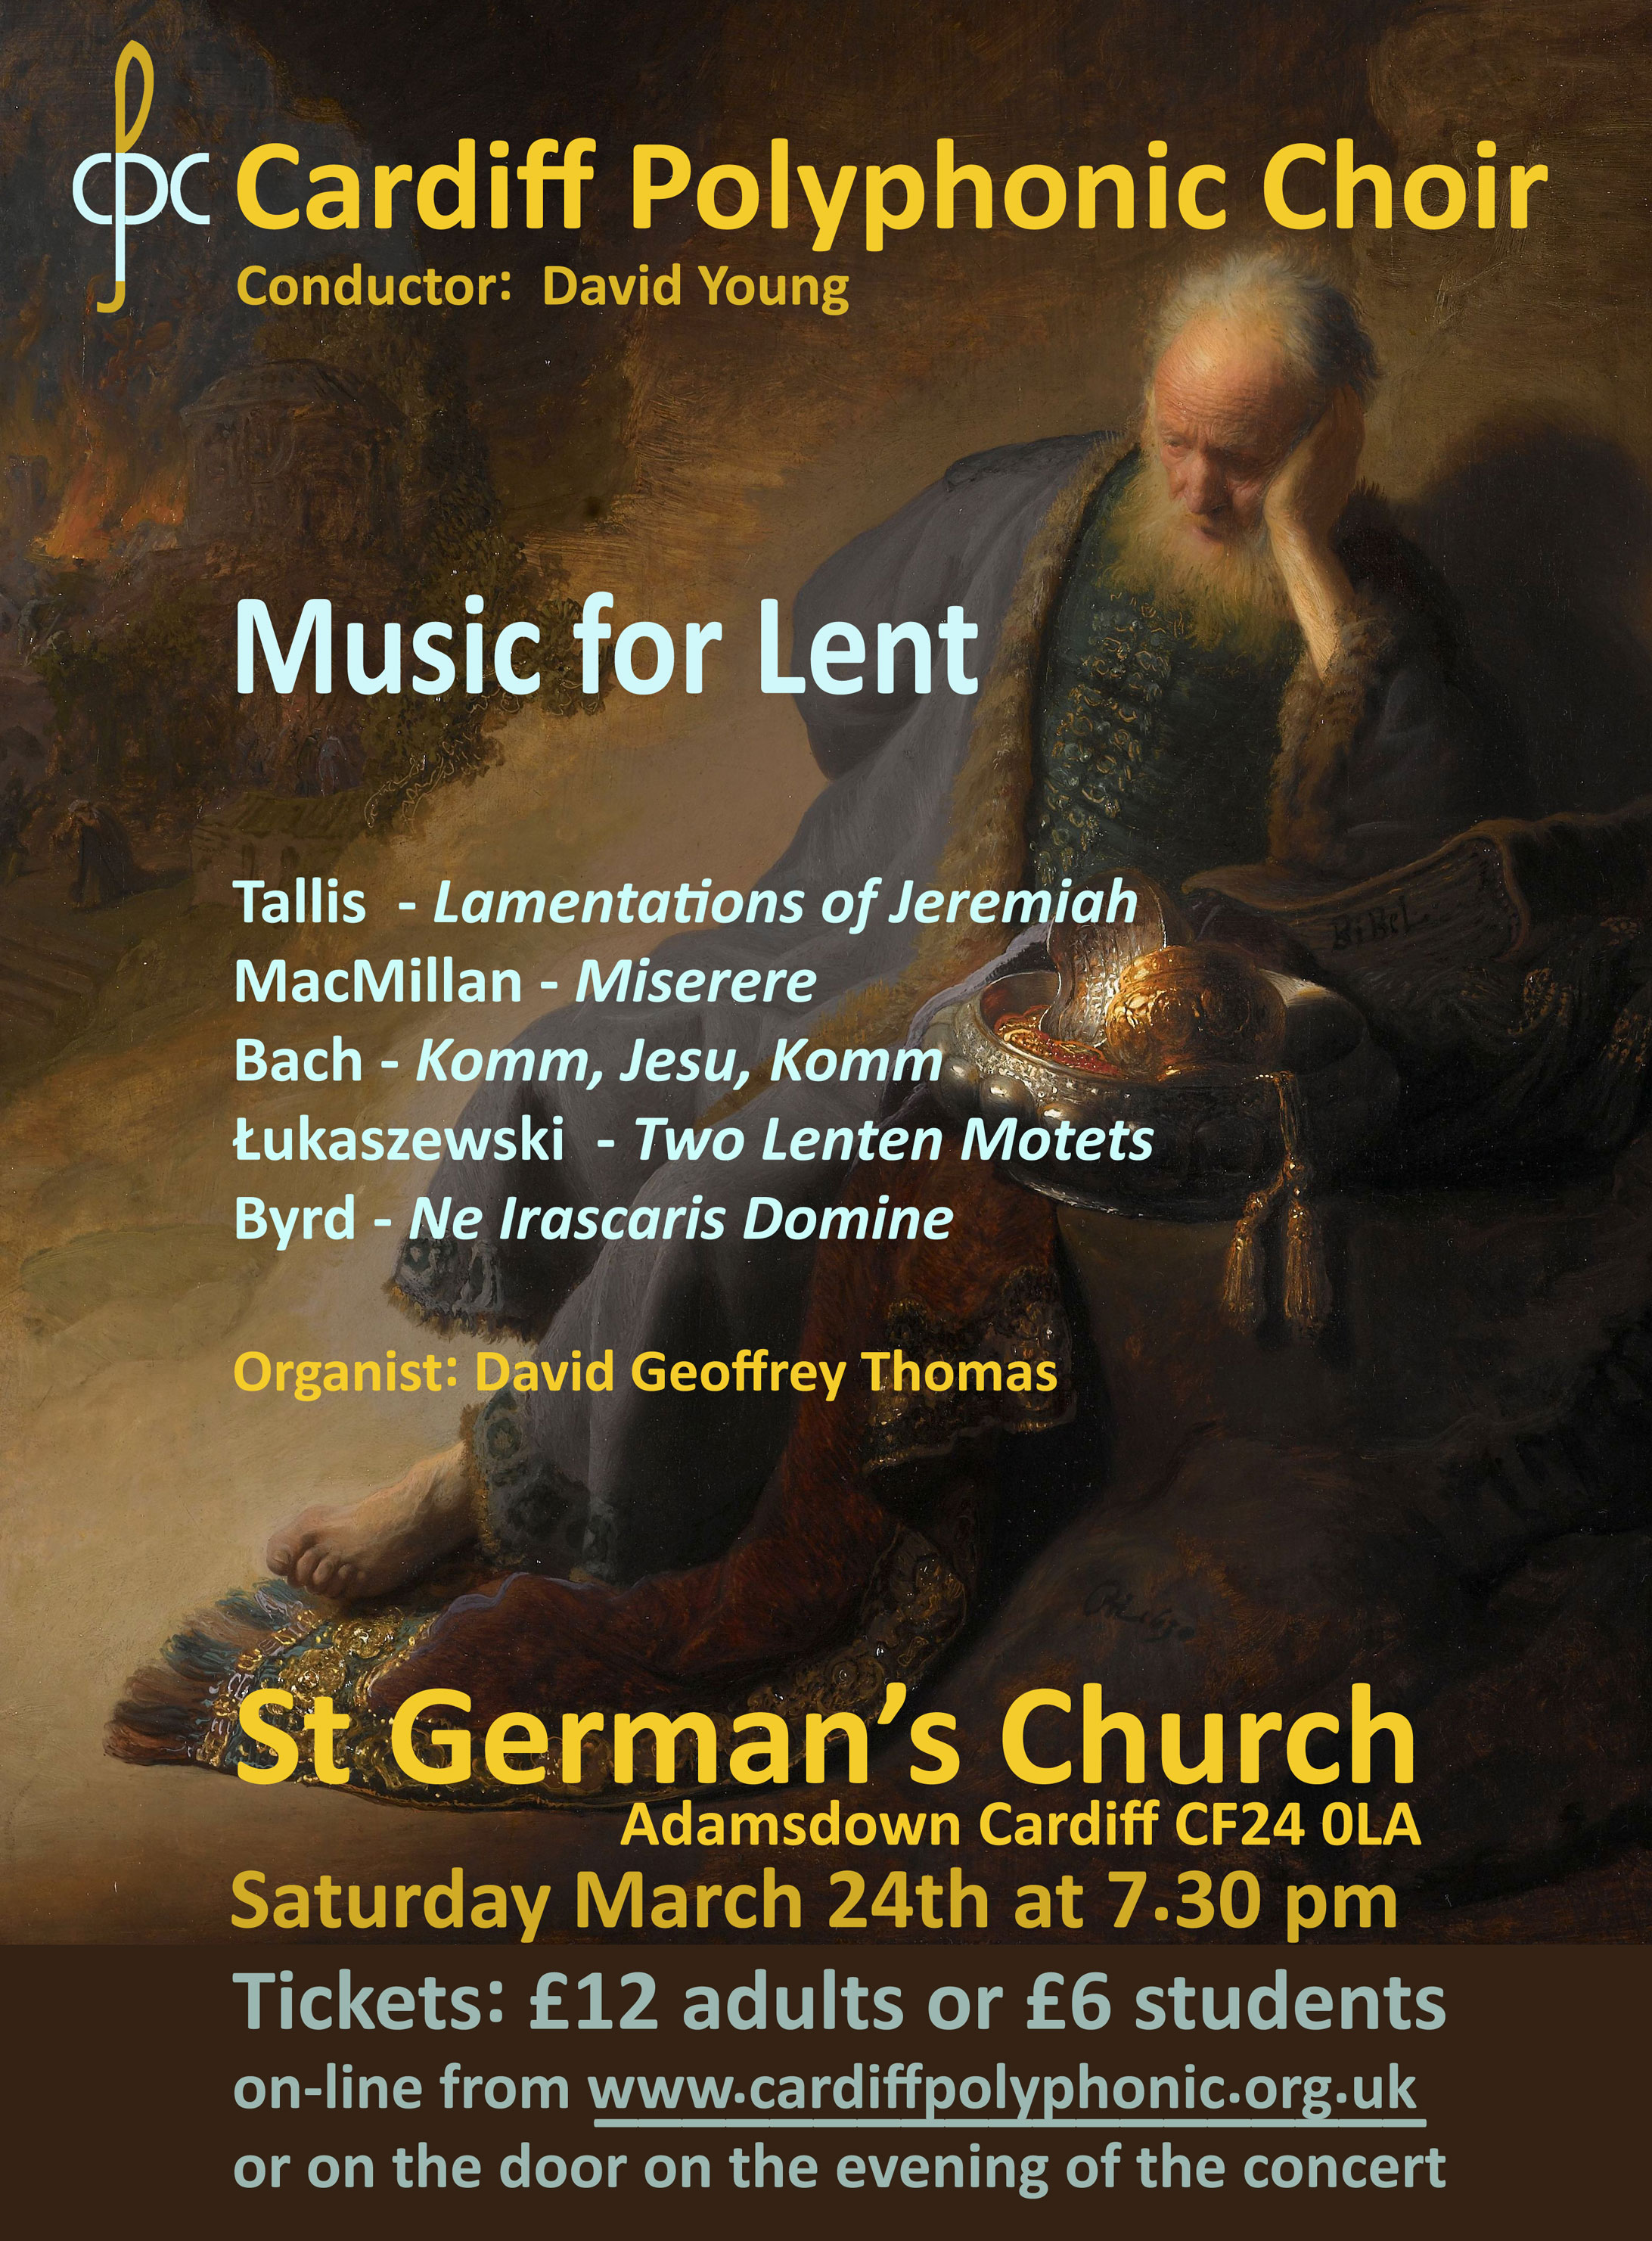 Music for Lent